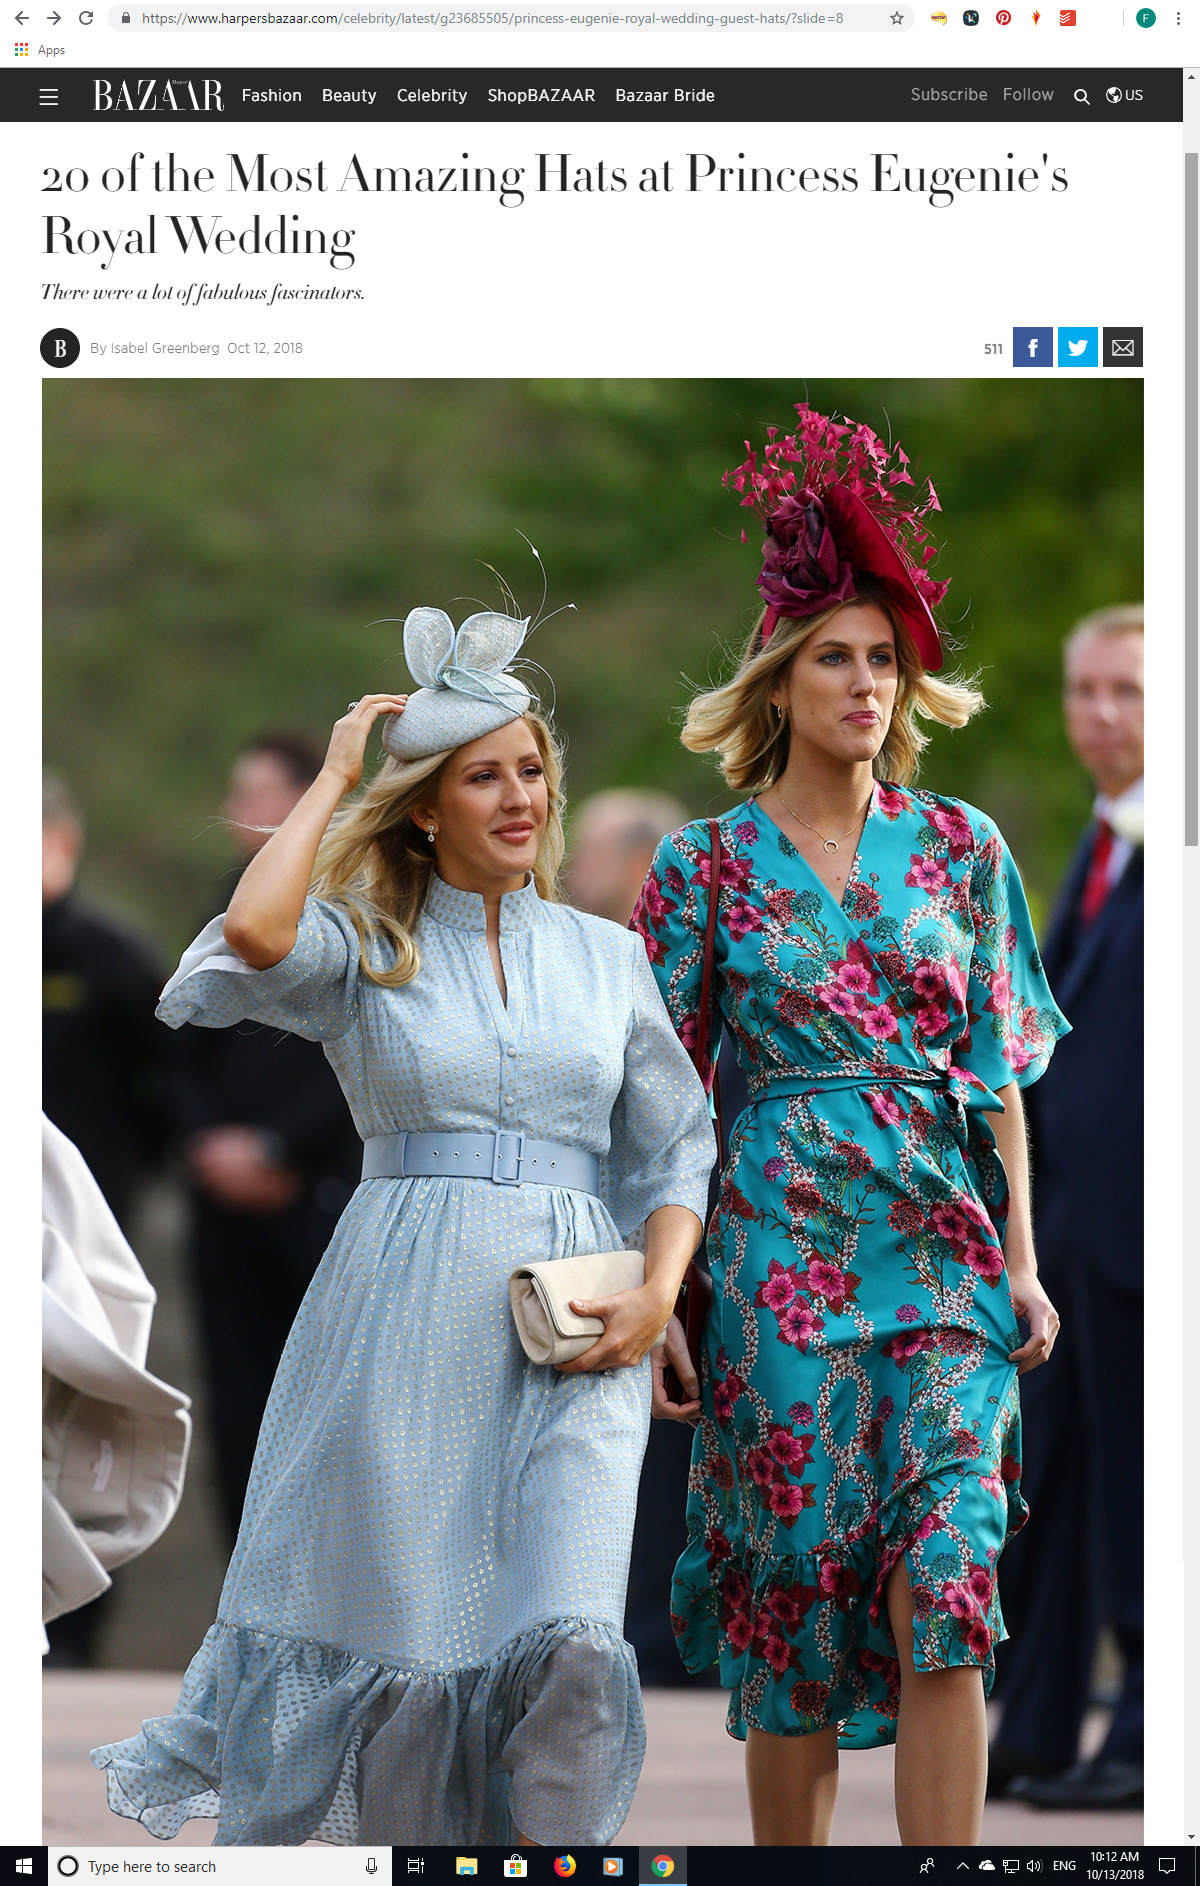 Best Dressed Guests at Princess Eugenies Wedding. What to wear to an Autumn Wedding. Royal Wedding Guests. Wedding Guest Outfits for Autumn Wedding